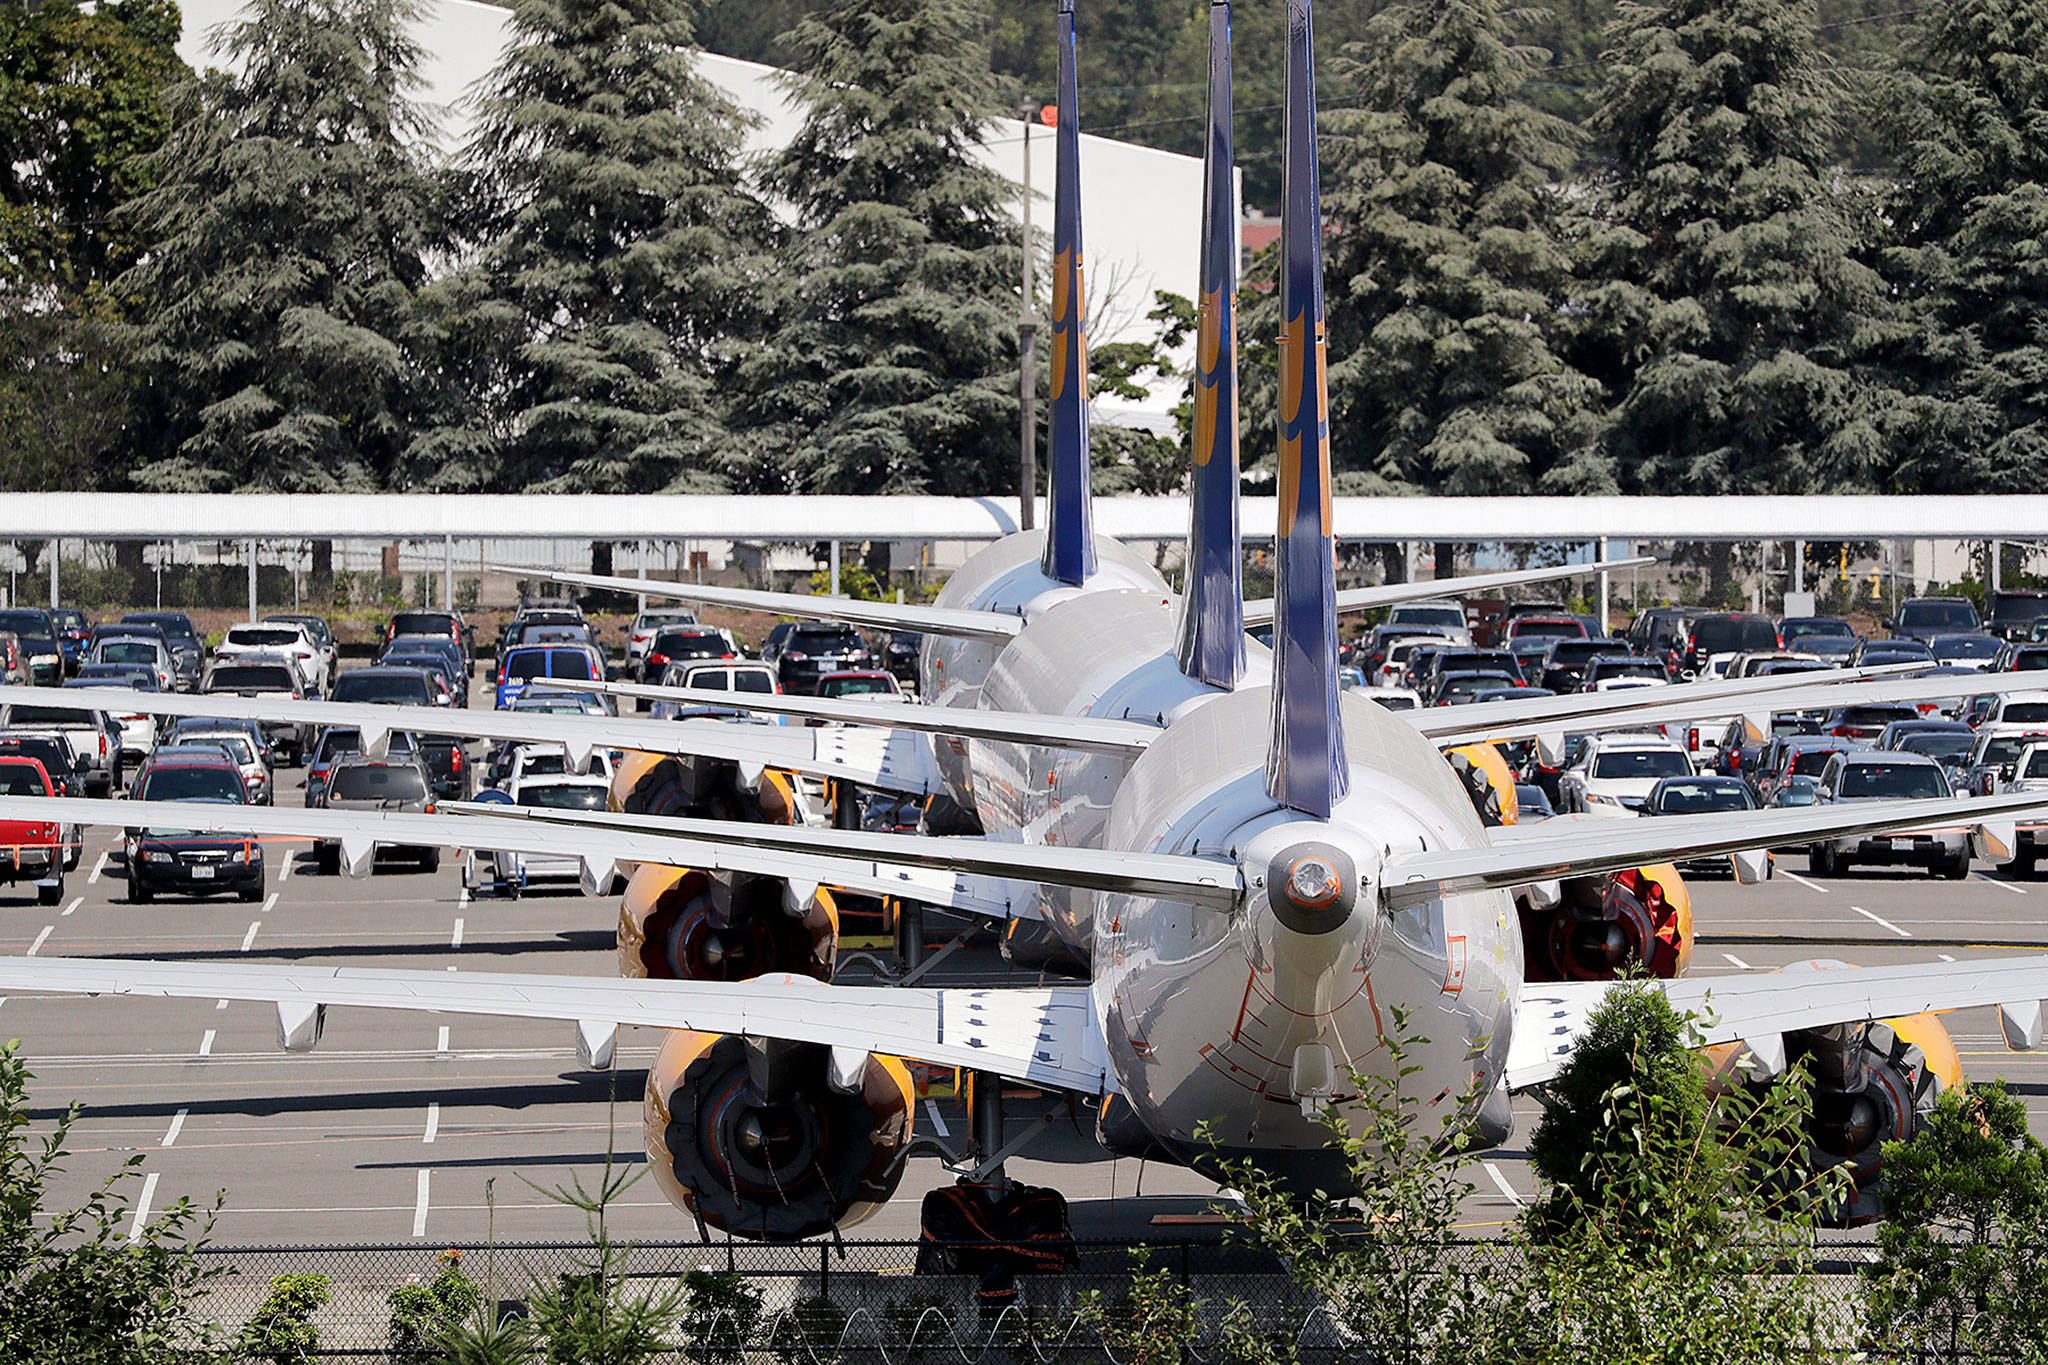 Grounded Boeing 737 Max airplanes, built for Icelandair, are parked in a lot normally used for cars in an area adjacent to Boeing Field in Seattle. (AP Photo/Elaine Thompson)